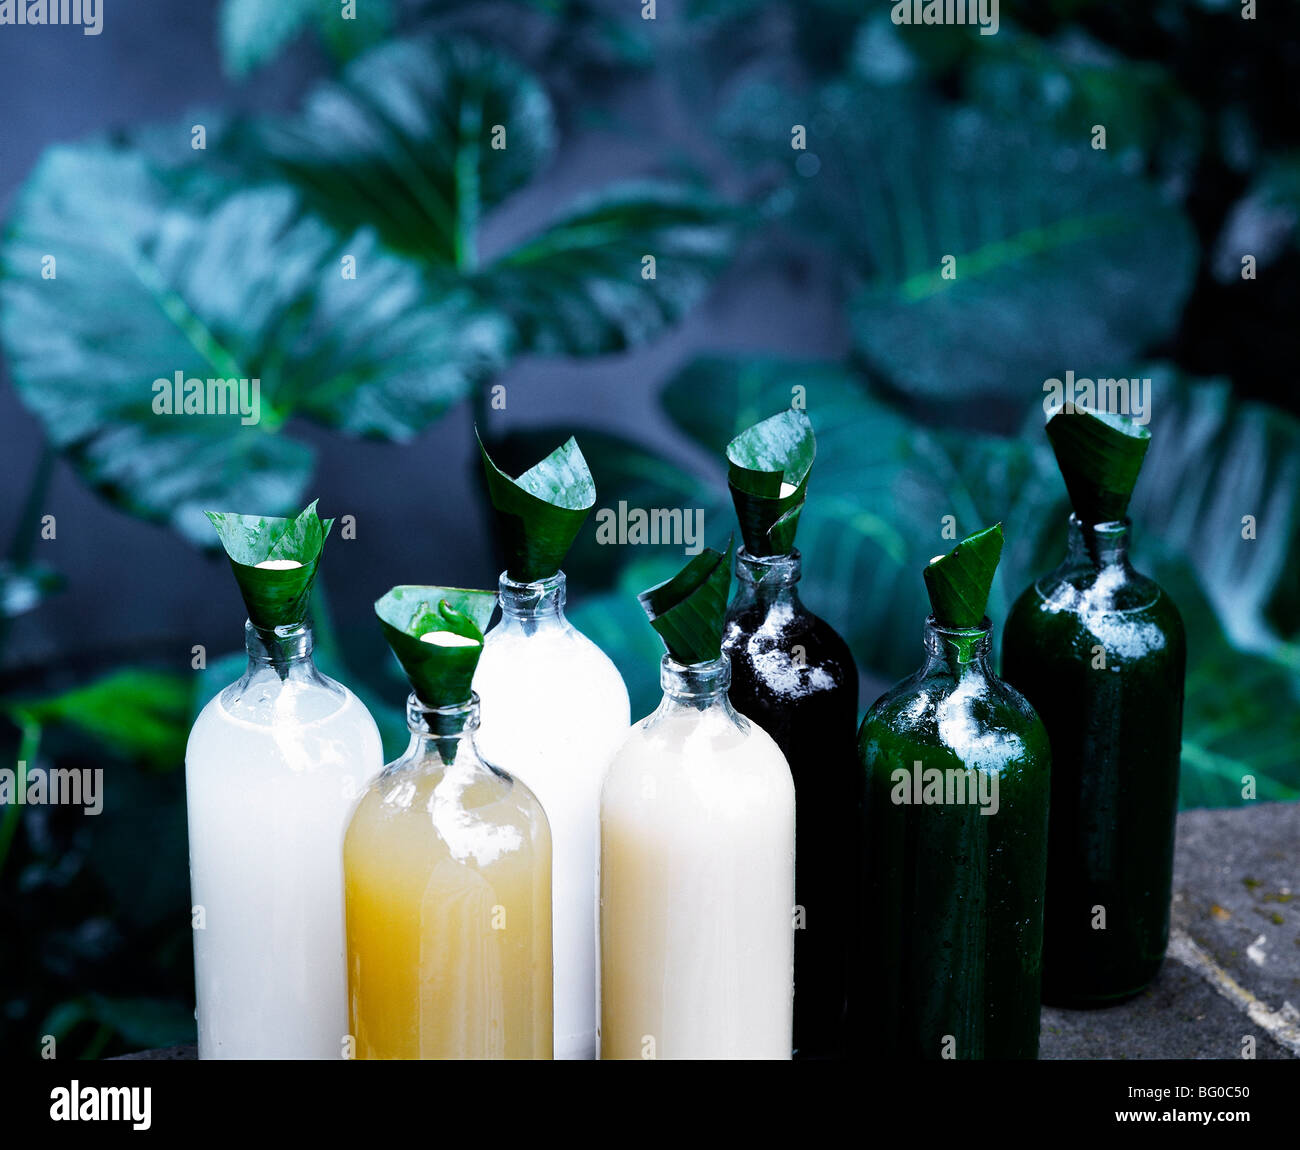 Bottles of Jamu, a traditional Indonesian herbal tonic, Indonesia, Southeast Asia, Asia - Stock Image